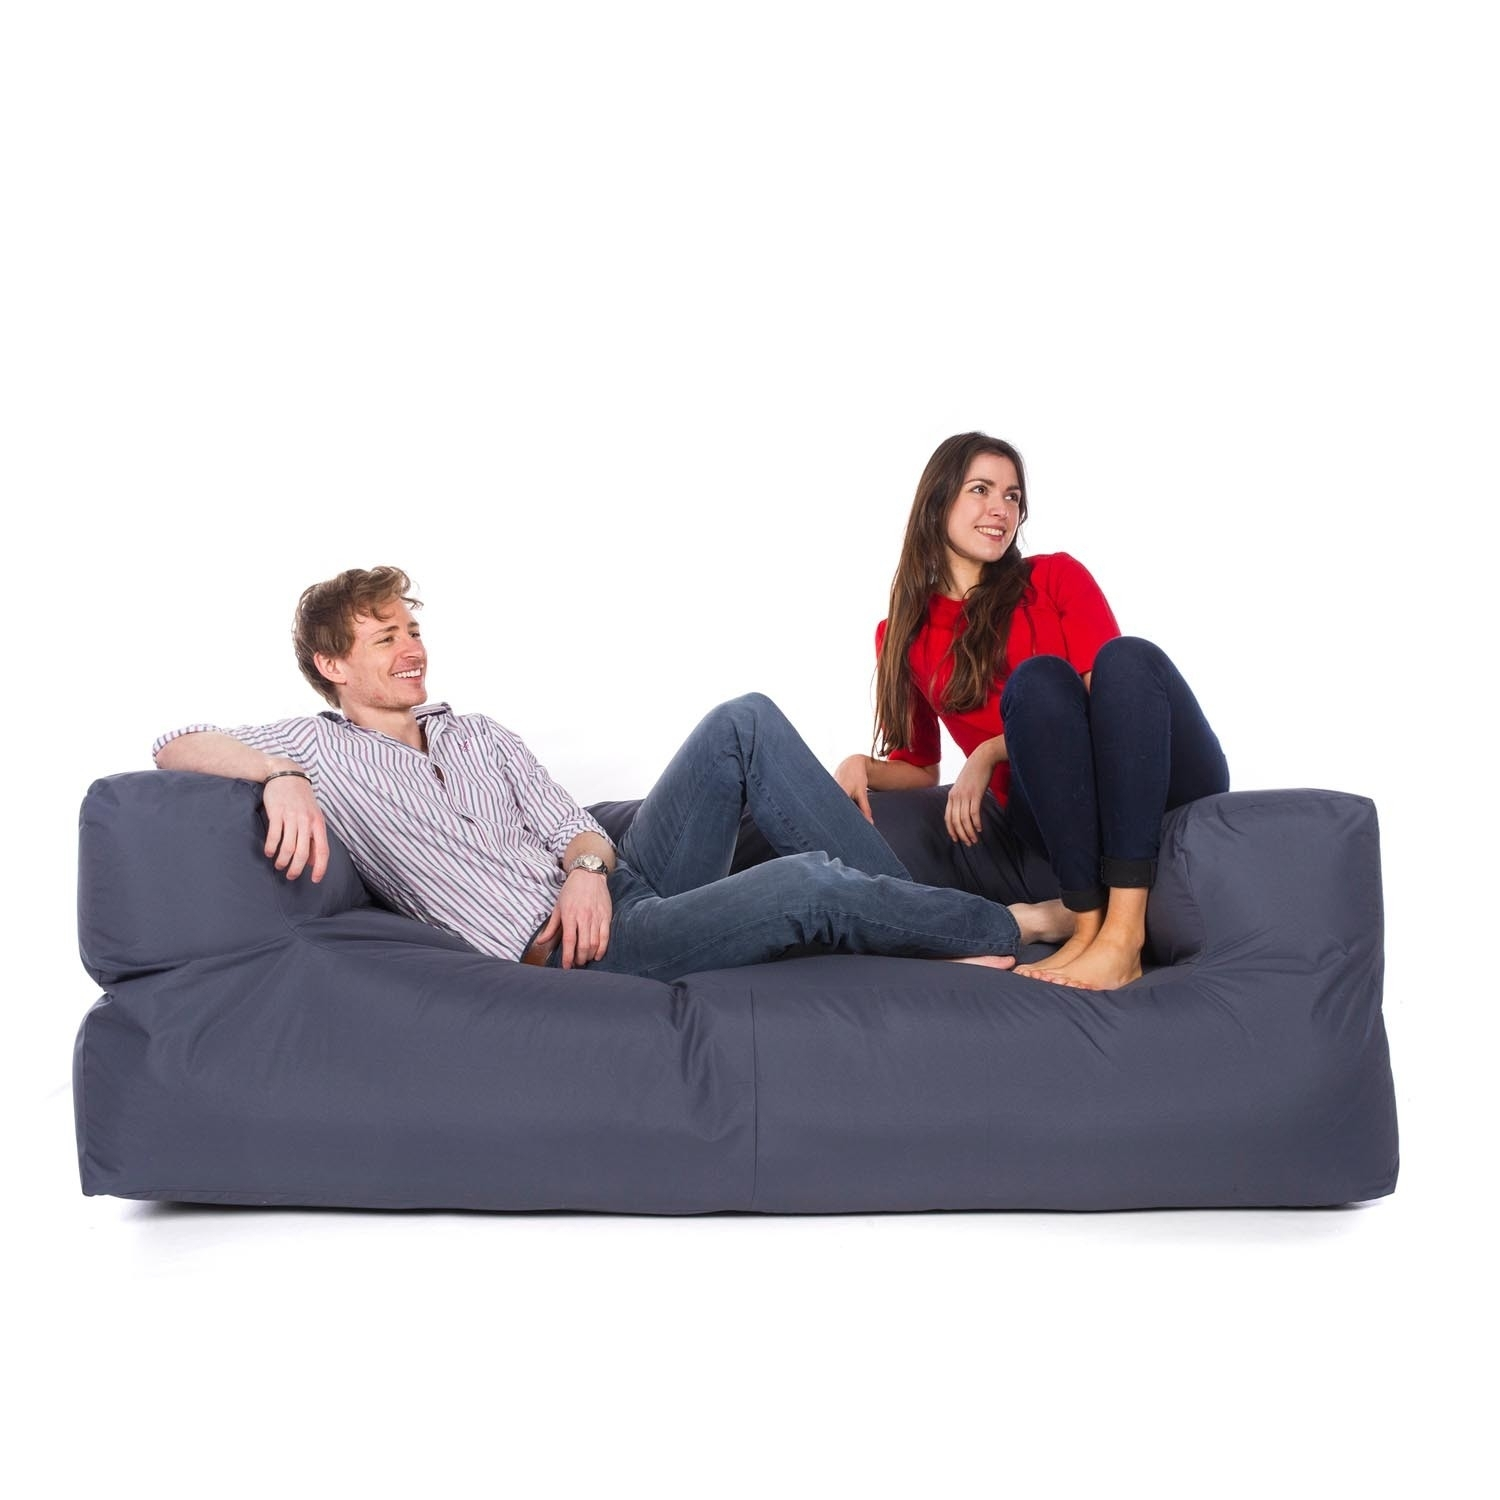 Indoor/outdoor Couch Bean Bag intended for Bean Bag Sofas